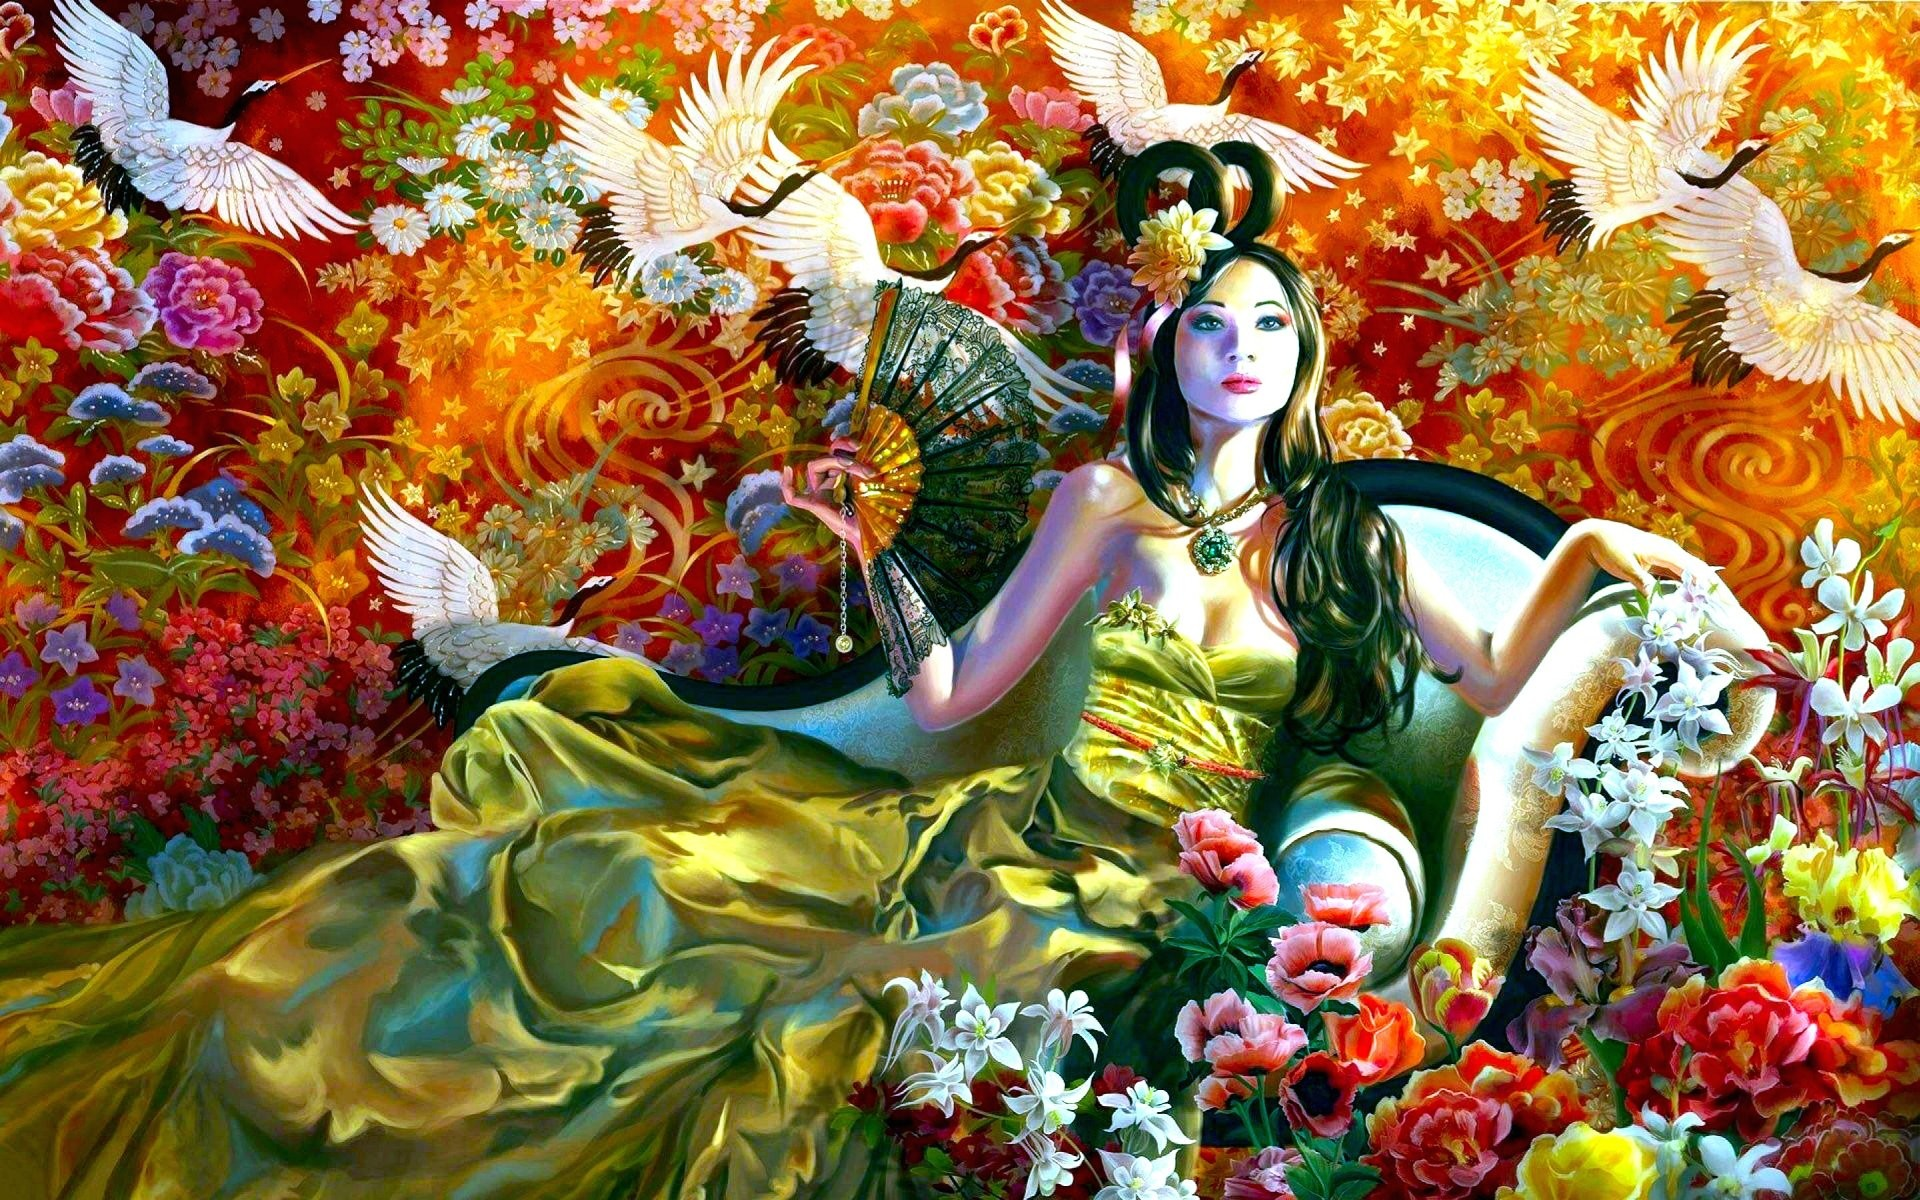 1920x1200 Z wallpaper amazing oriental fantasy art